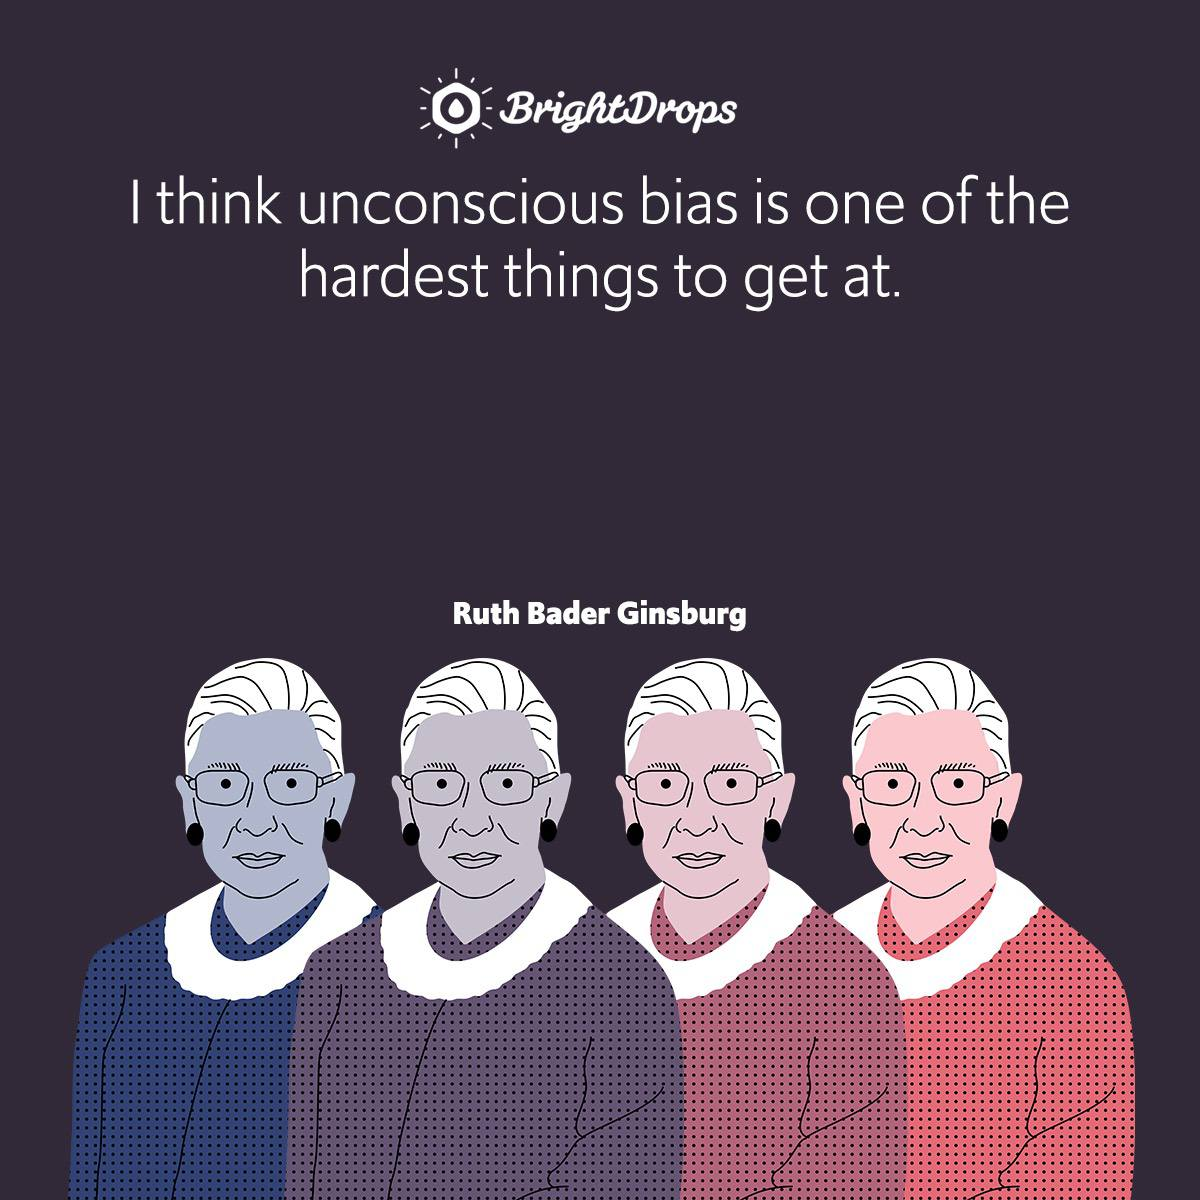 I think unconscious bias is one of the hardest things to get at.